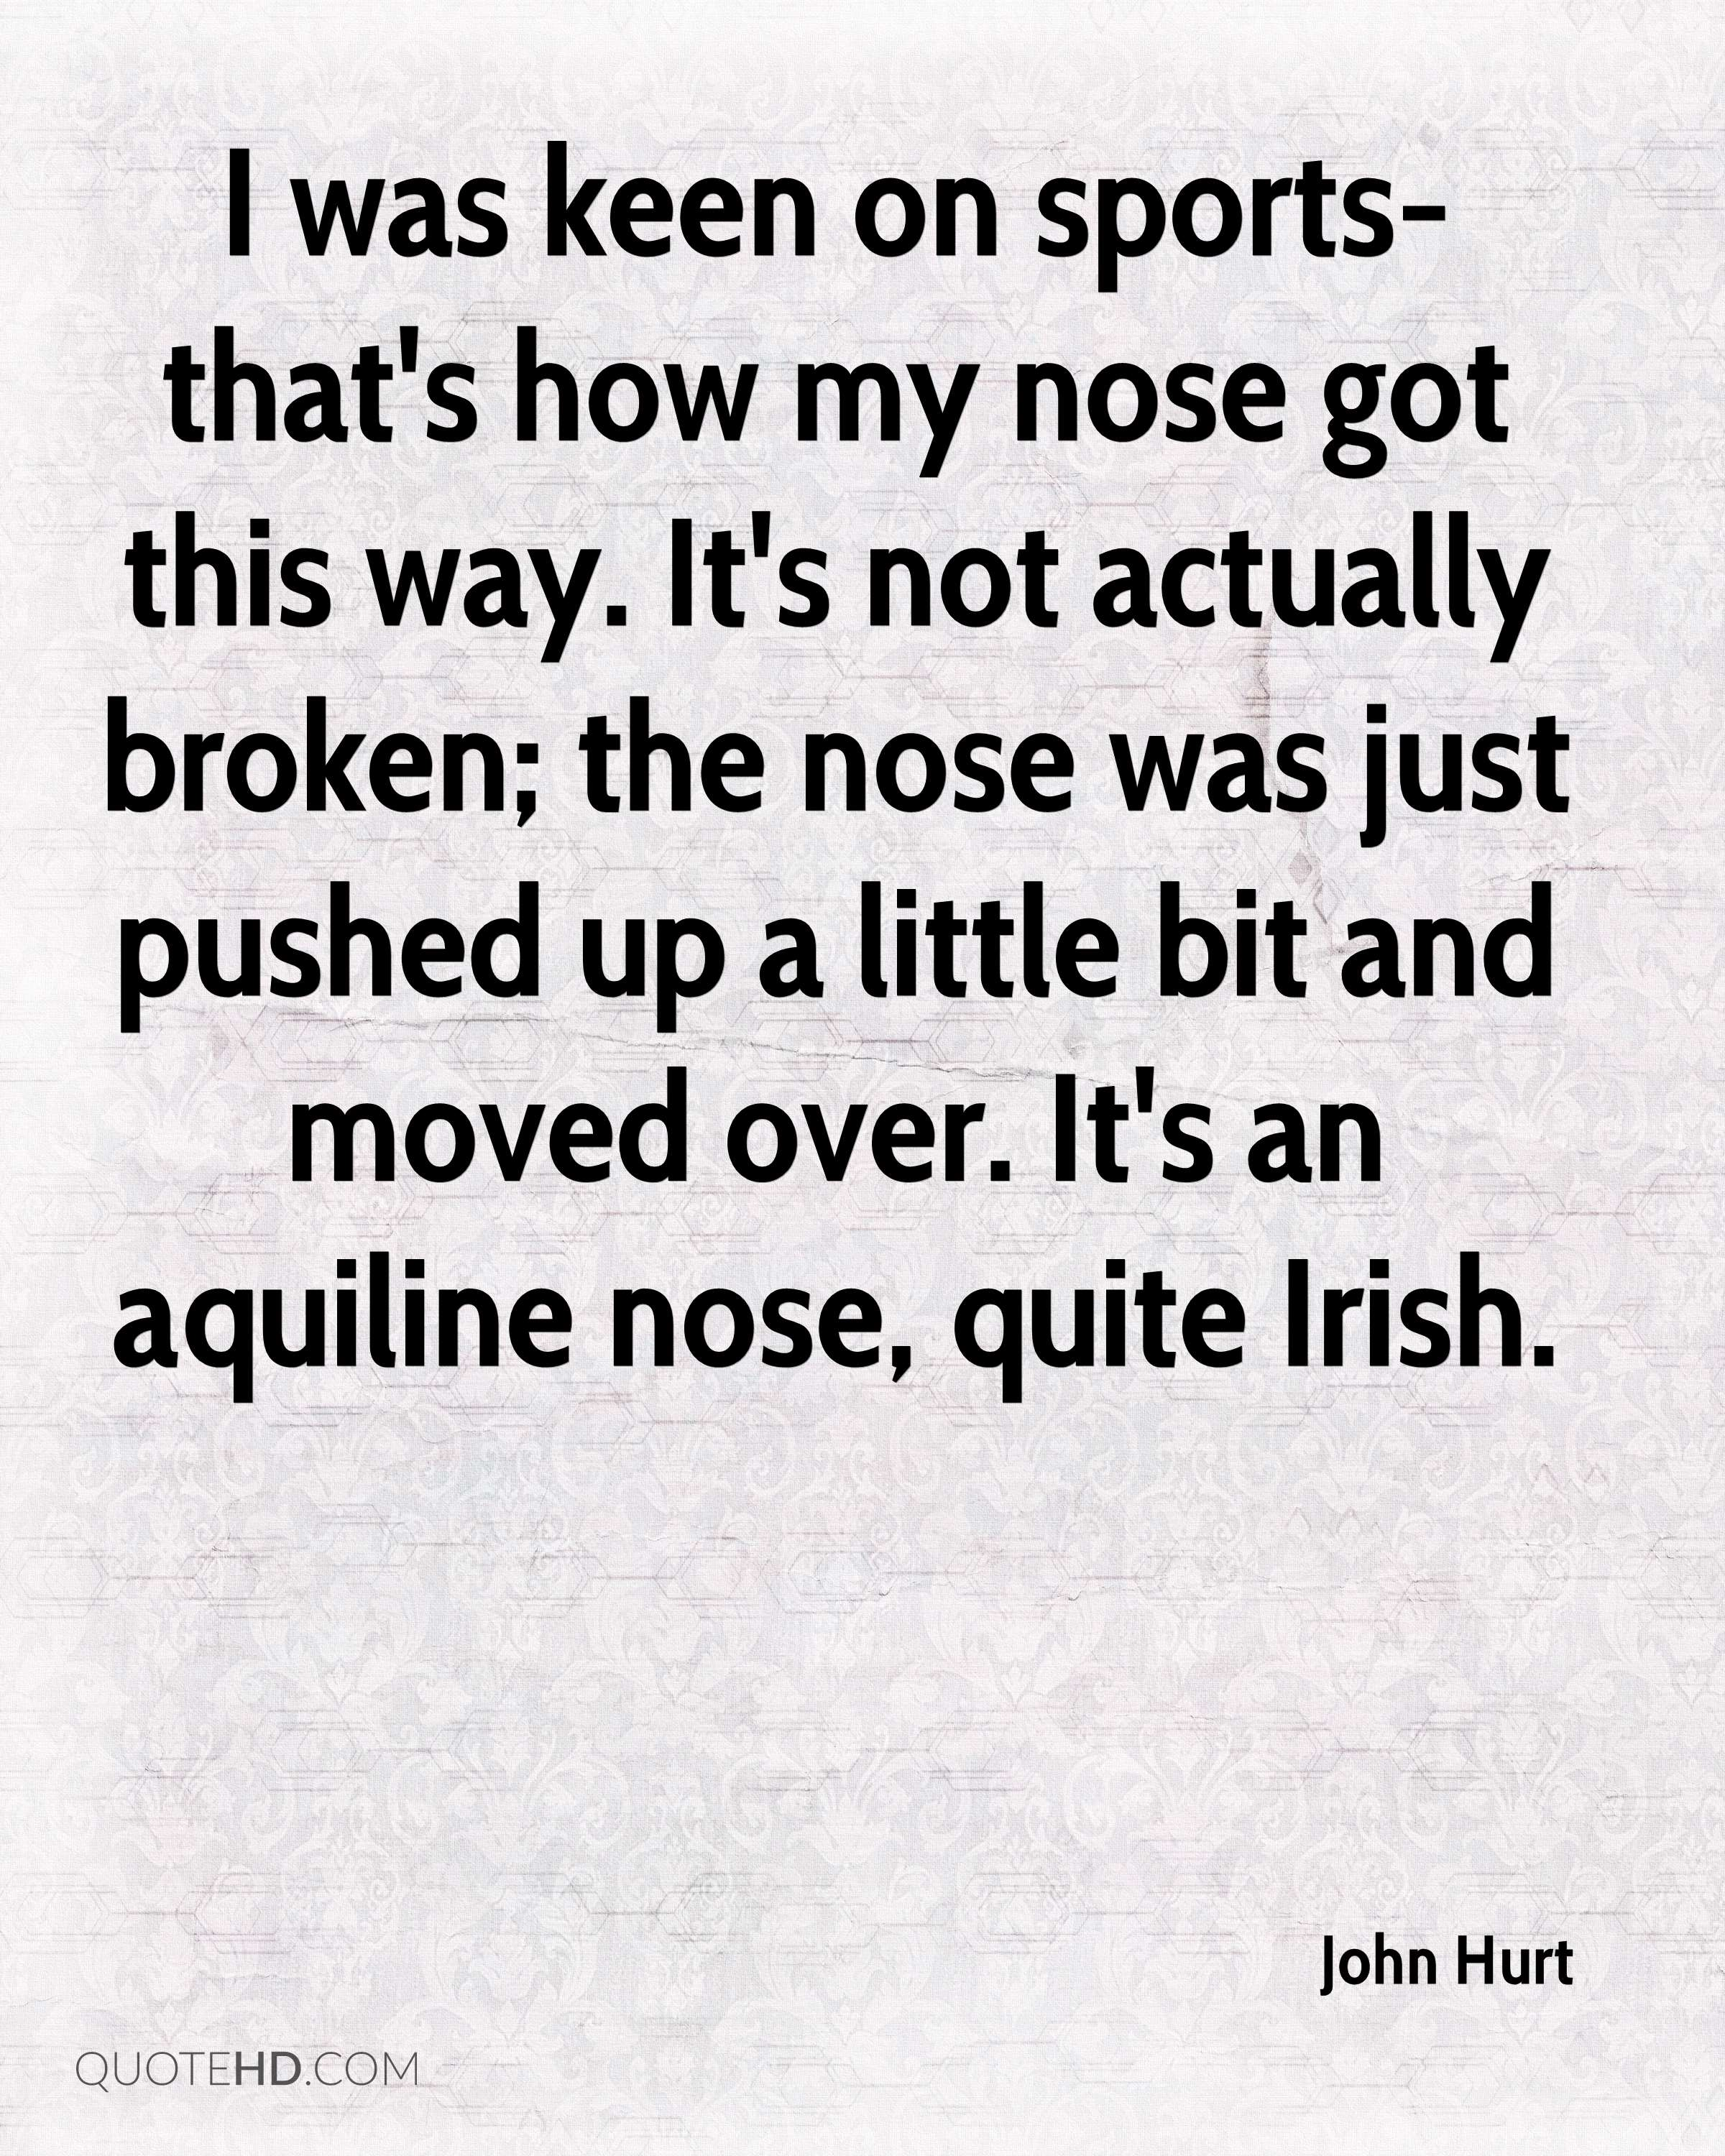 I was keen on sports-that's how my nose got this way. It's not actually broken; the nose was just pushed up a little bit and moved over. It's an aquiline nose, quite Irish.